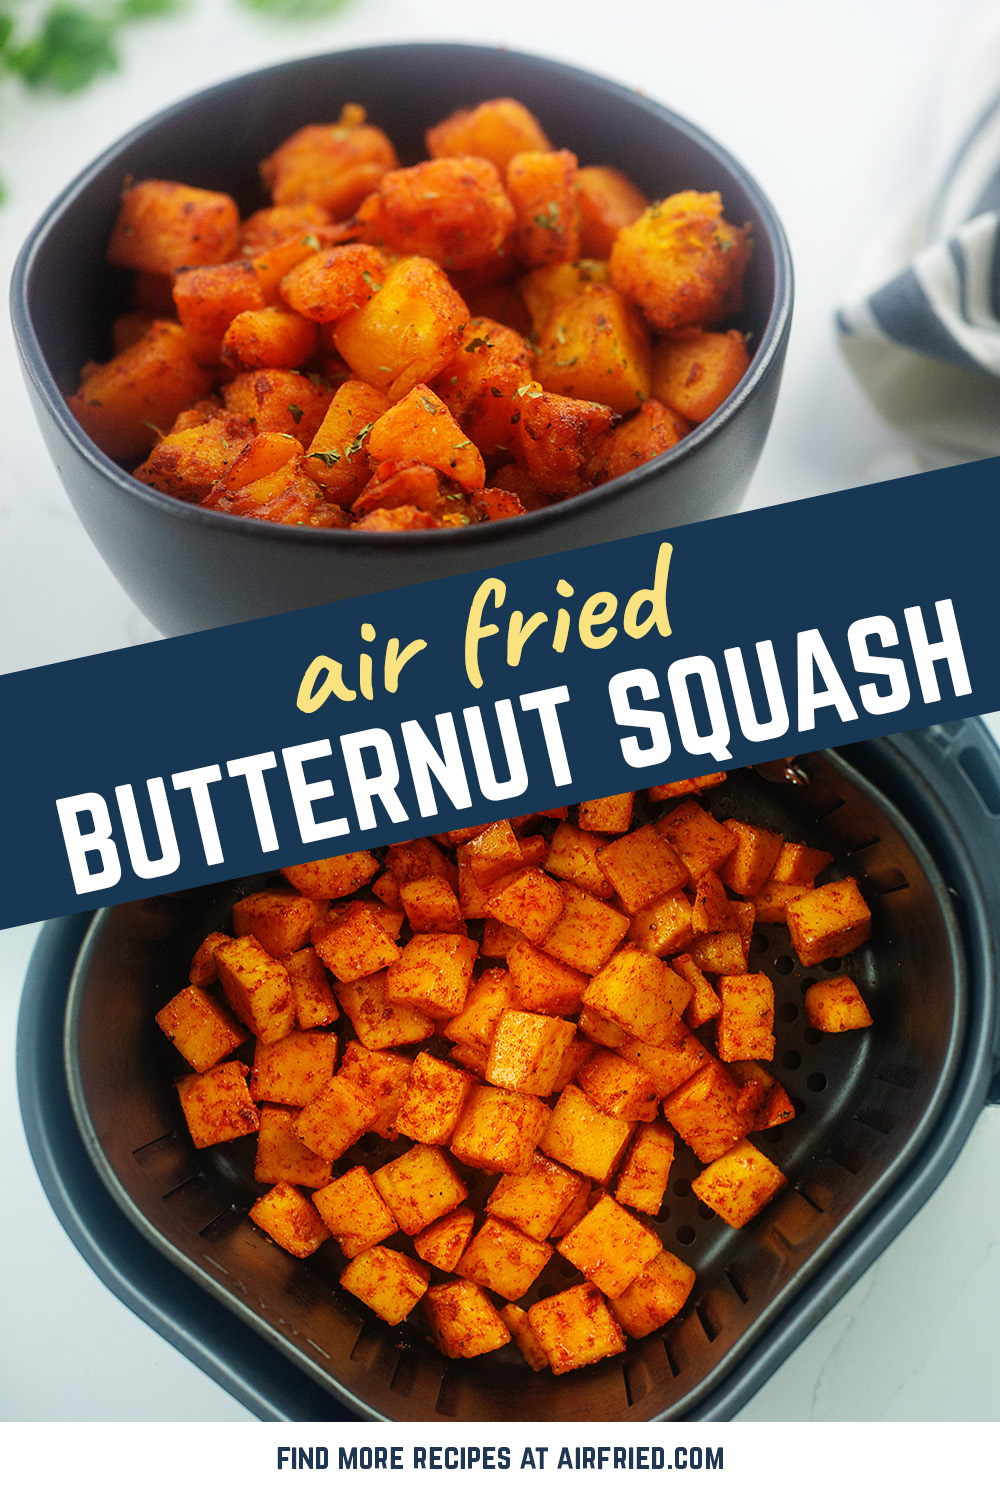 Try this butternut squash recipe for a healthy snack or side dish at your next meal!